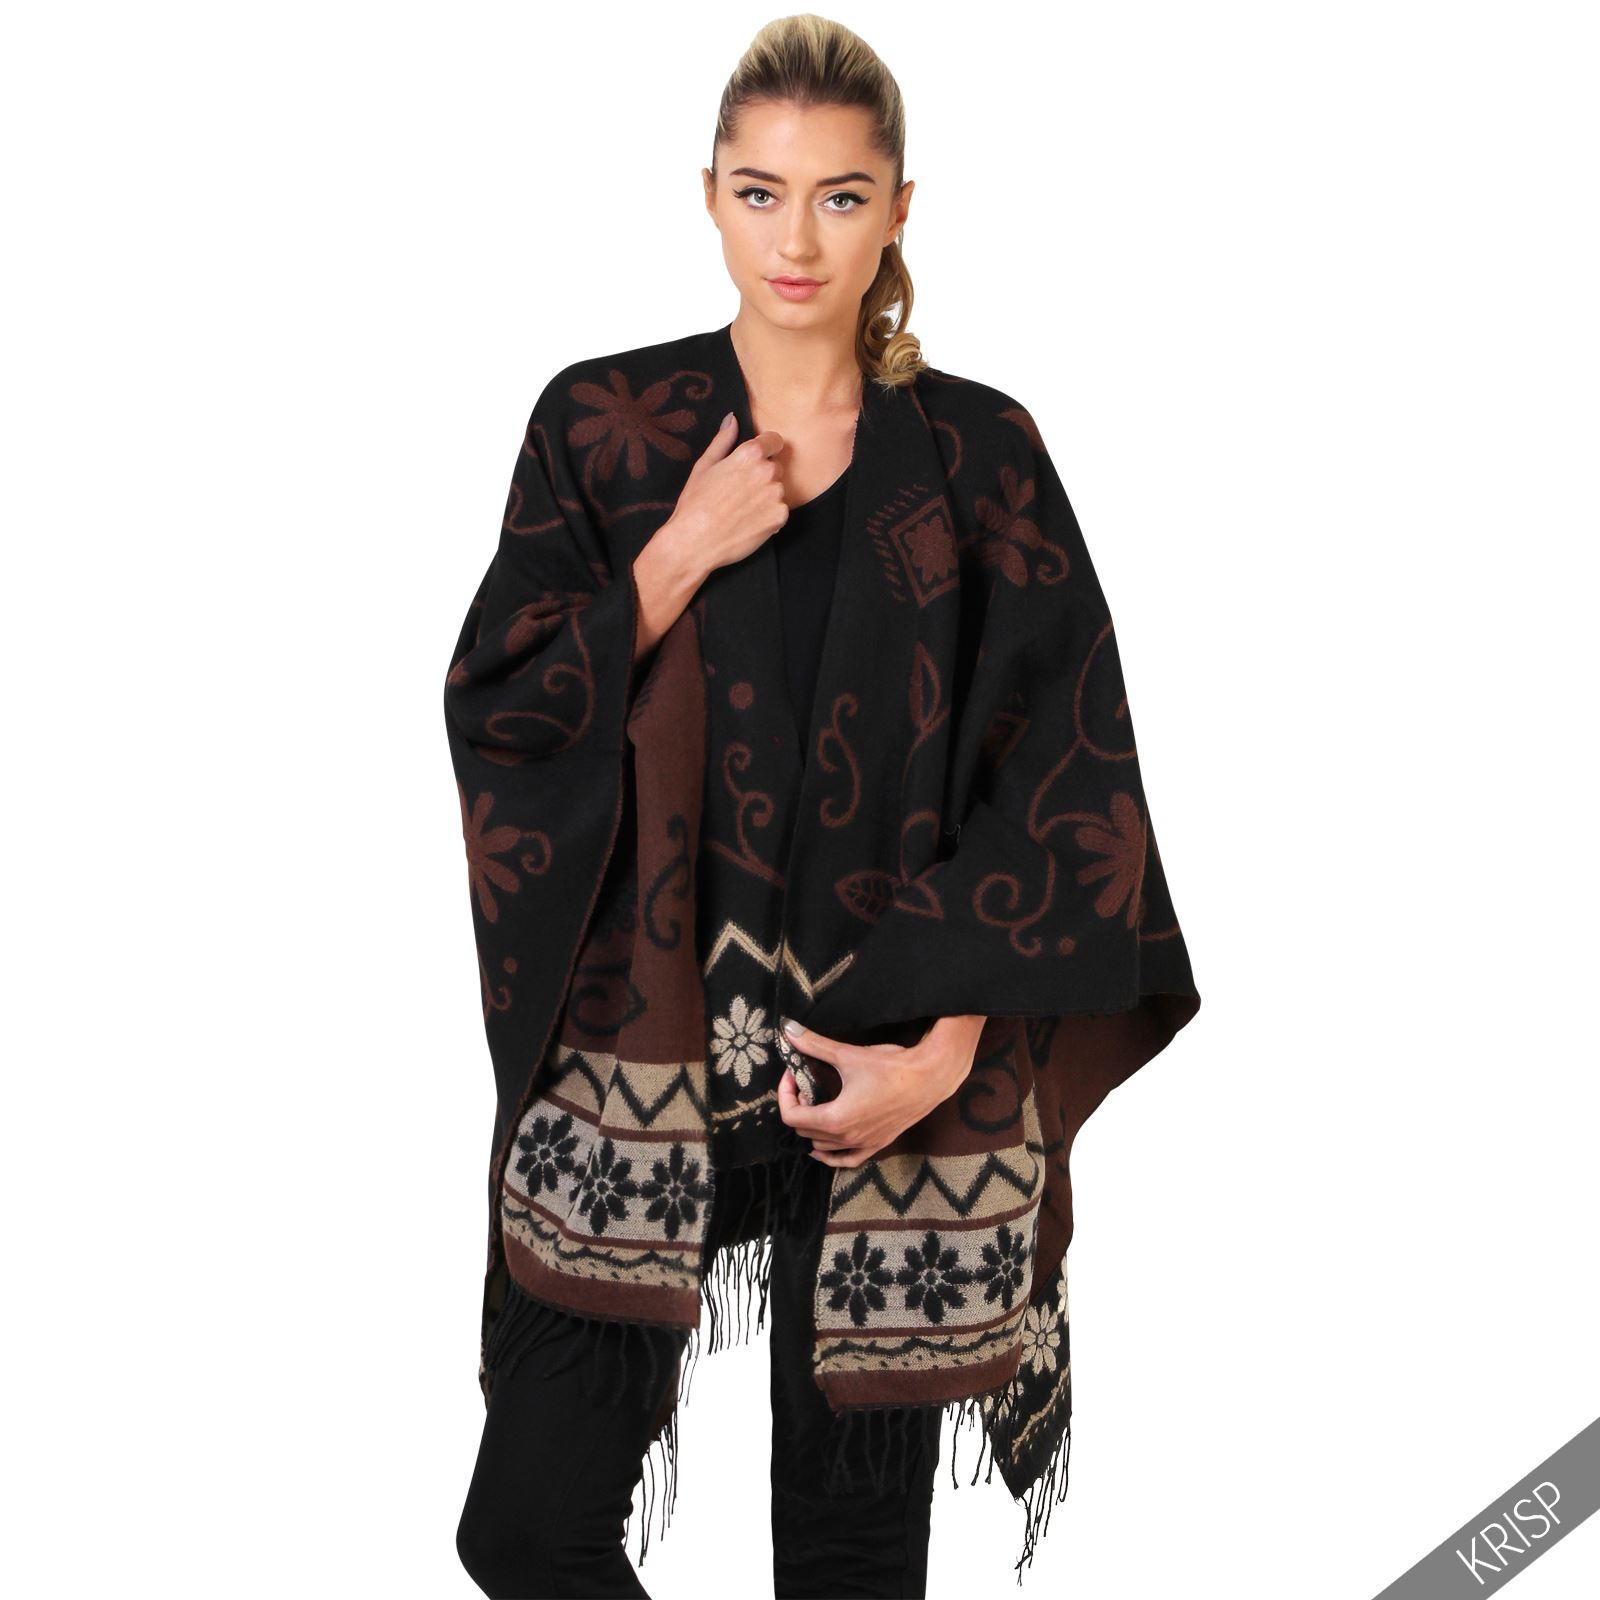 femmes poncho uni cape echarpe epaisse chaude uni frange sans manche casual fr ebay. Black Bedroom Furniture Sets. Home Design Ideas